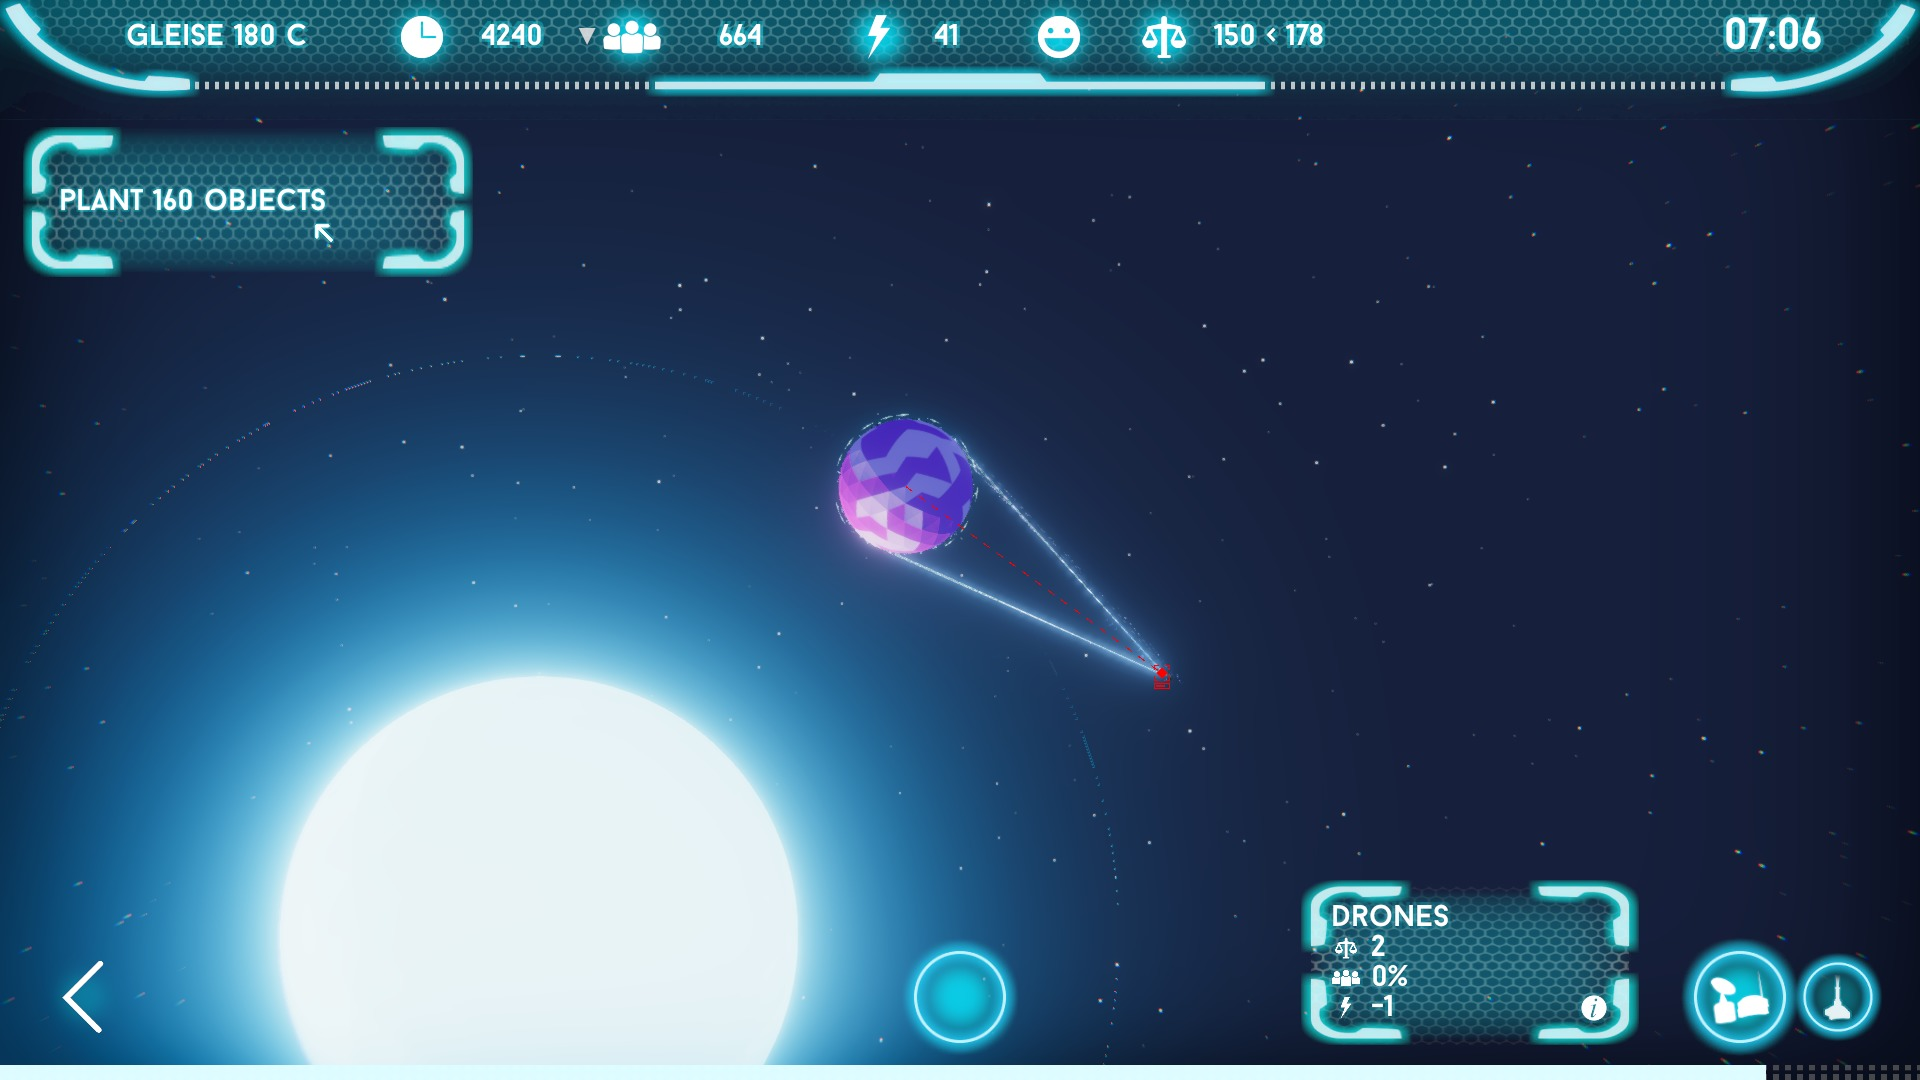 Arcade planet simulator Keeplanet goes live on Steam